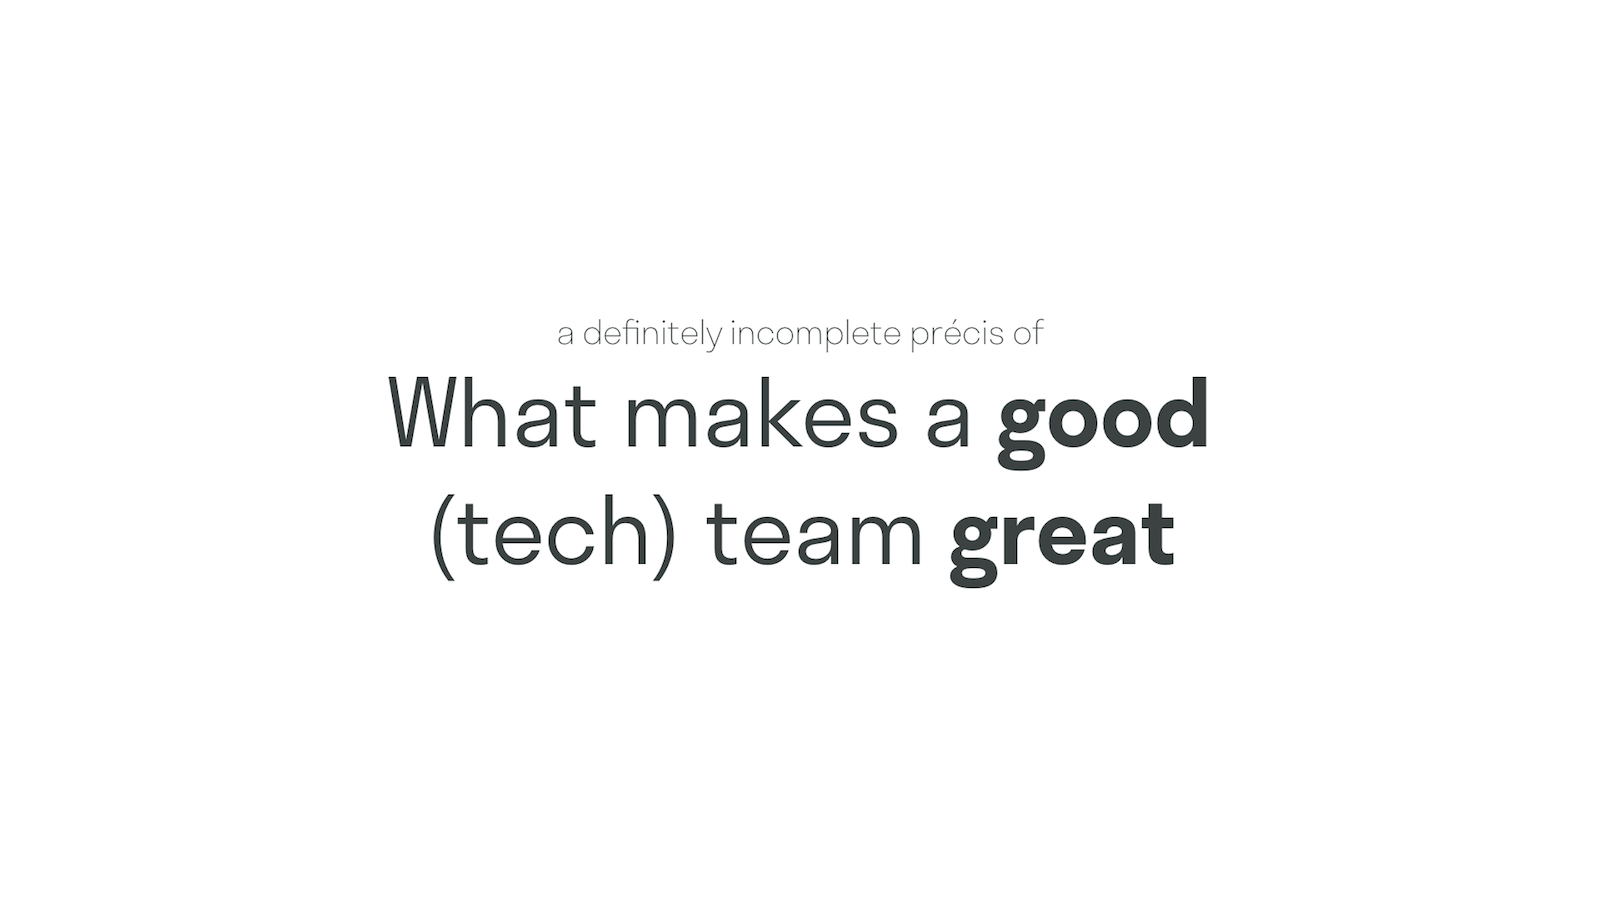 A definitely incomplete précis of… What makes a good (tech) team great.